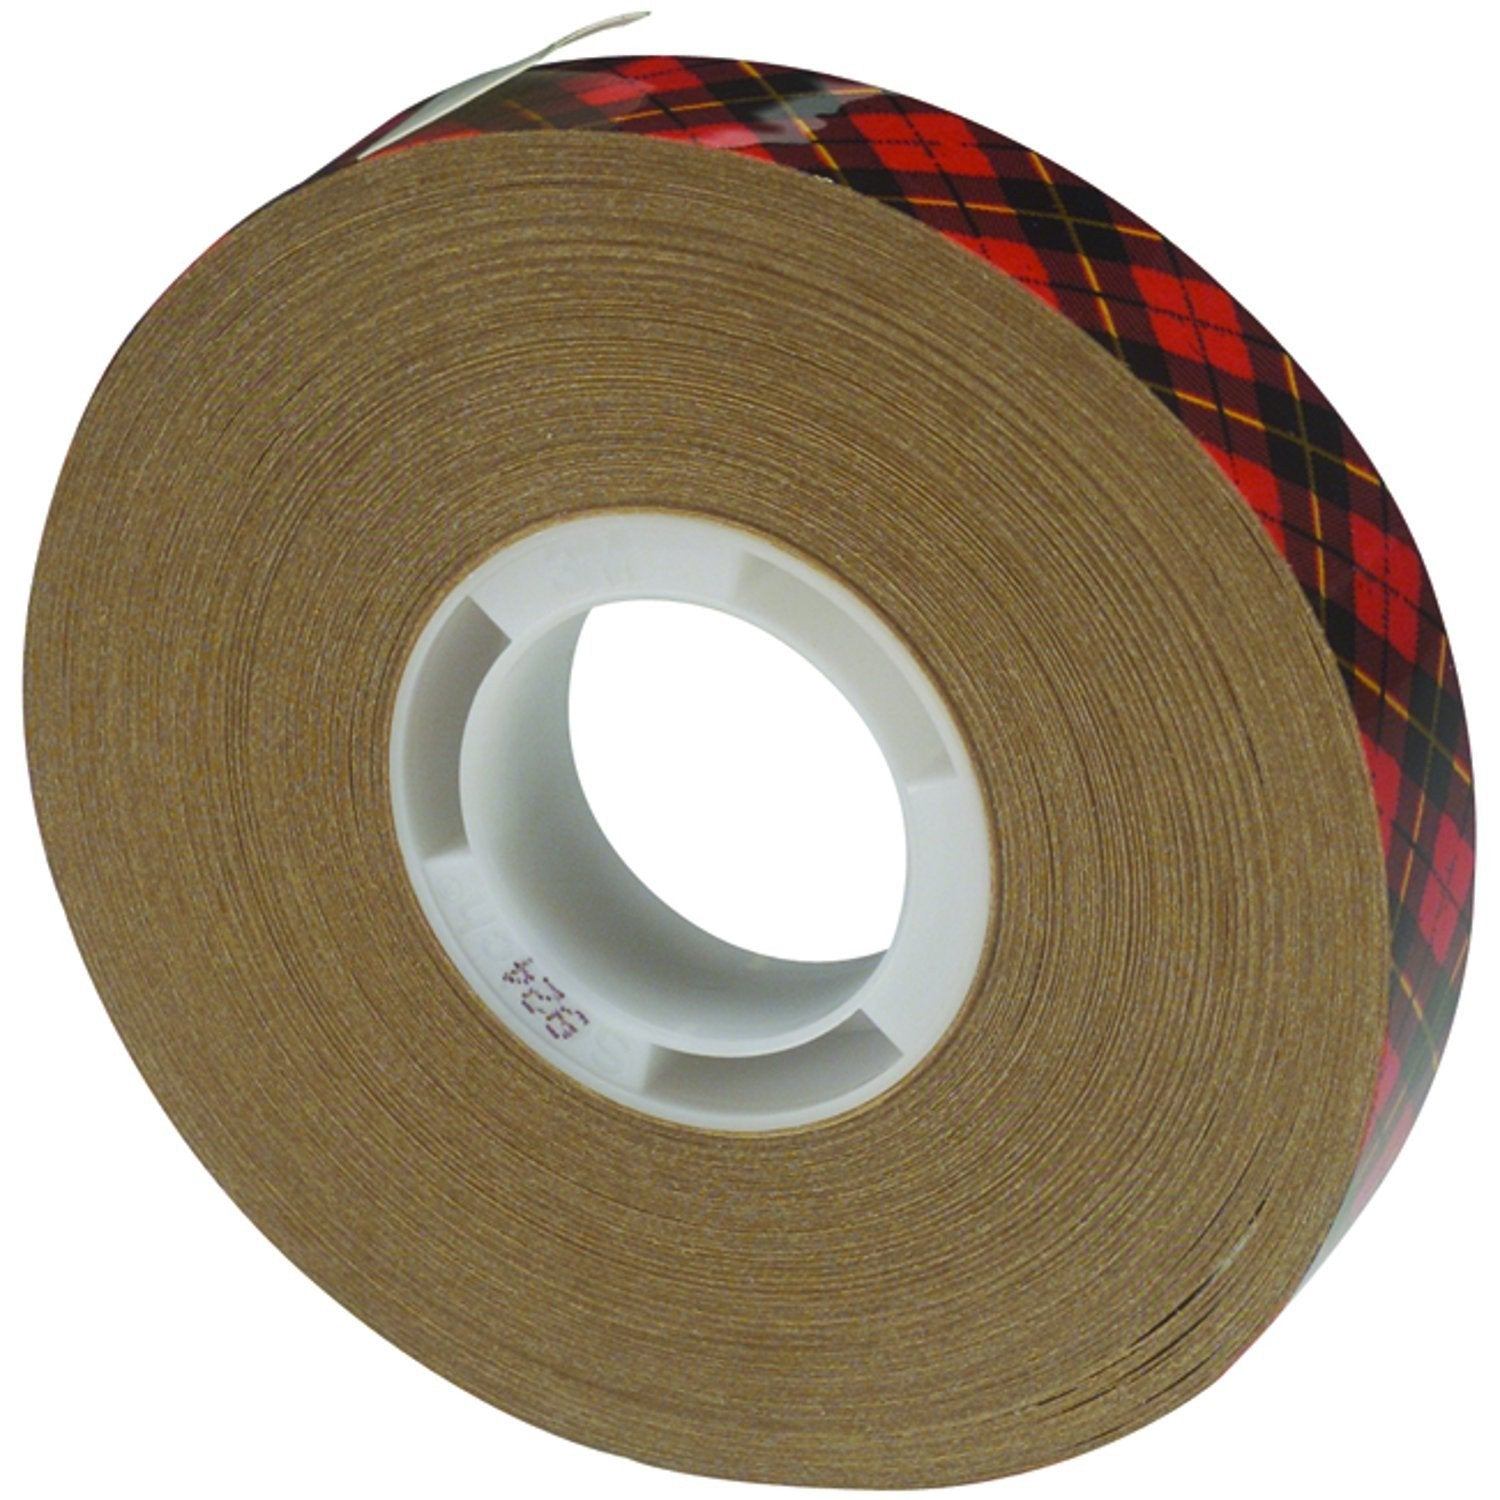 High Tack Double-Sided Tape - Moss LED